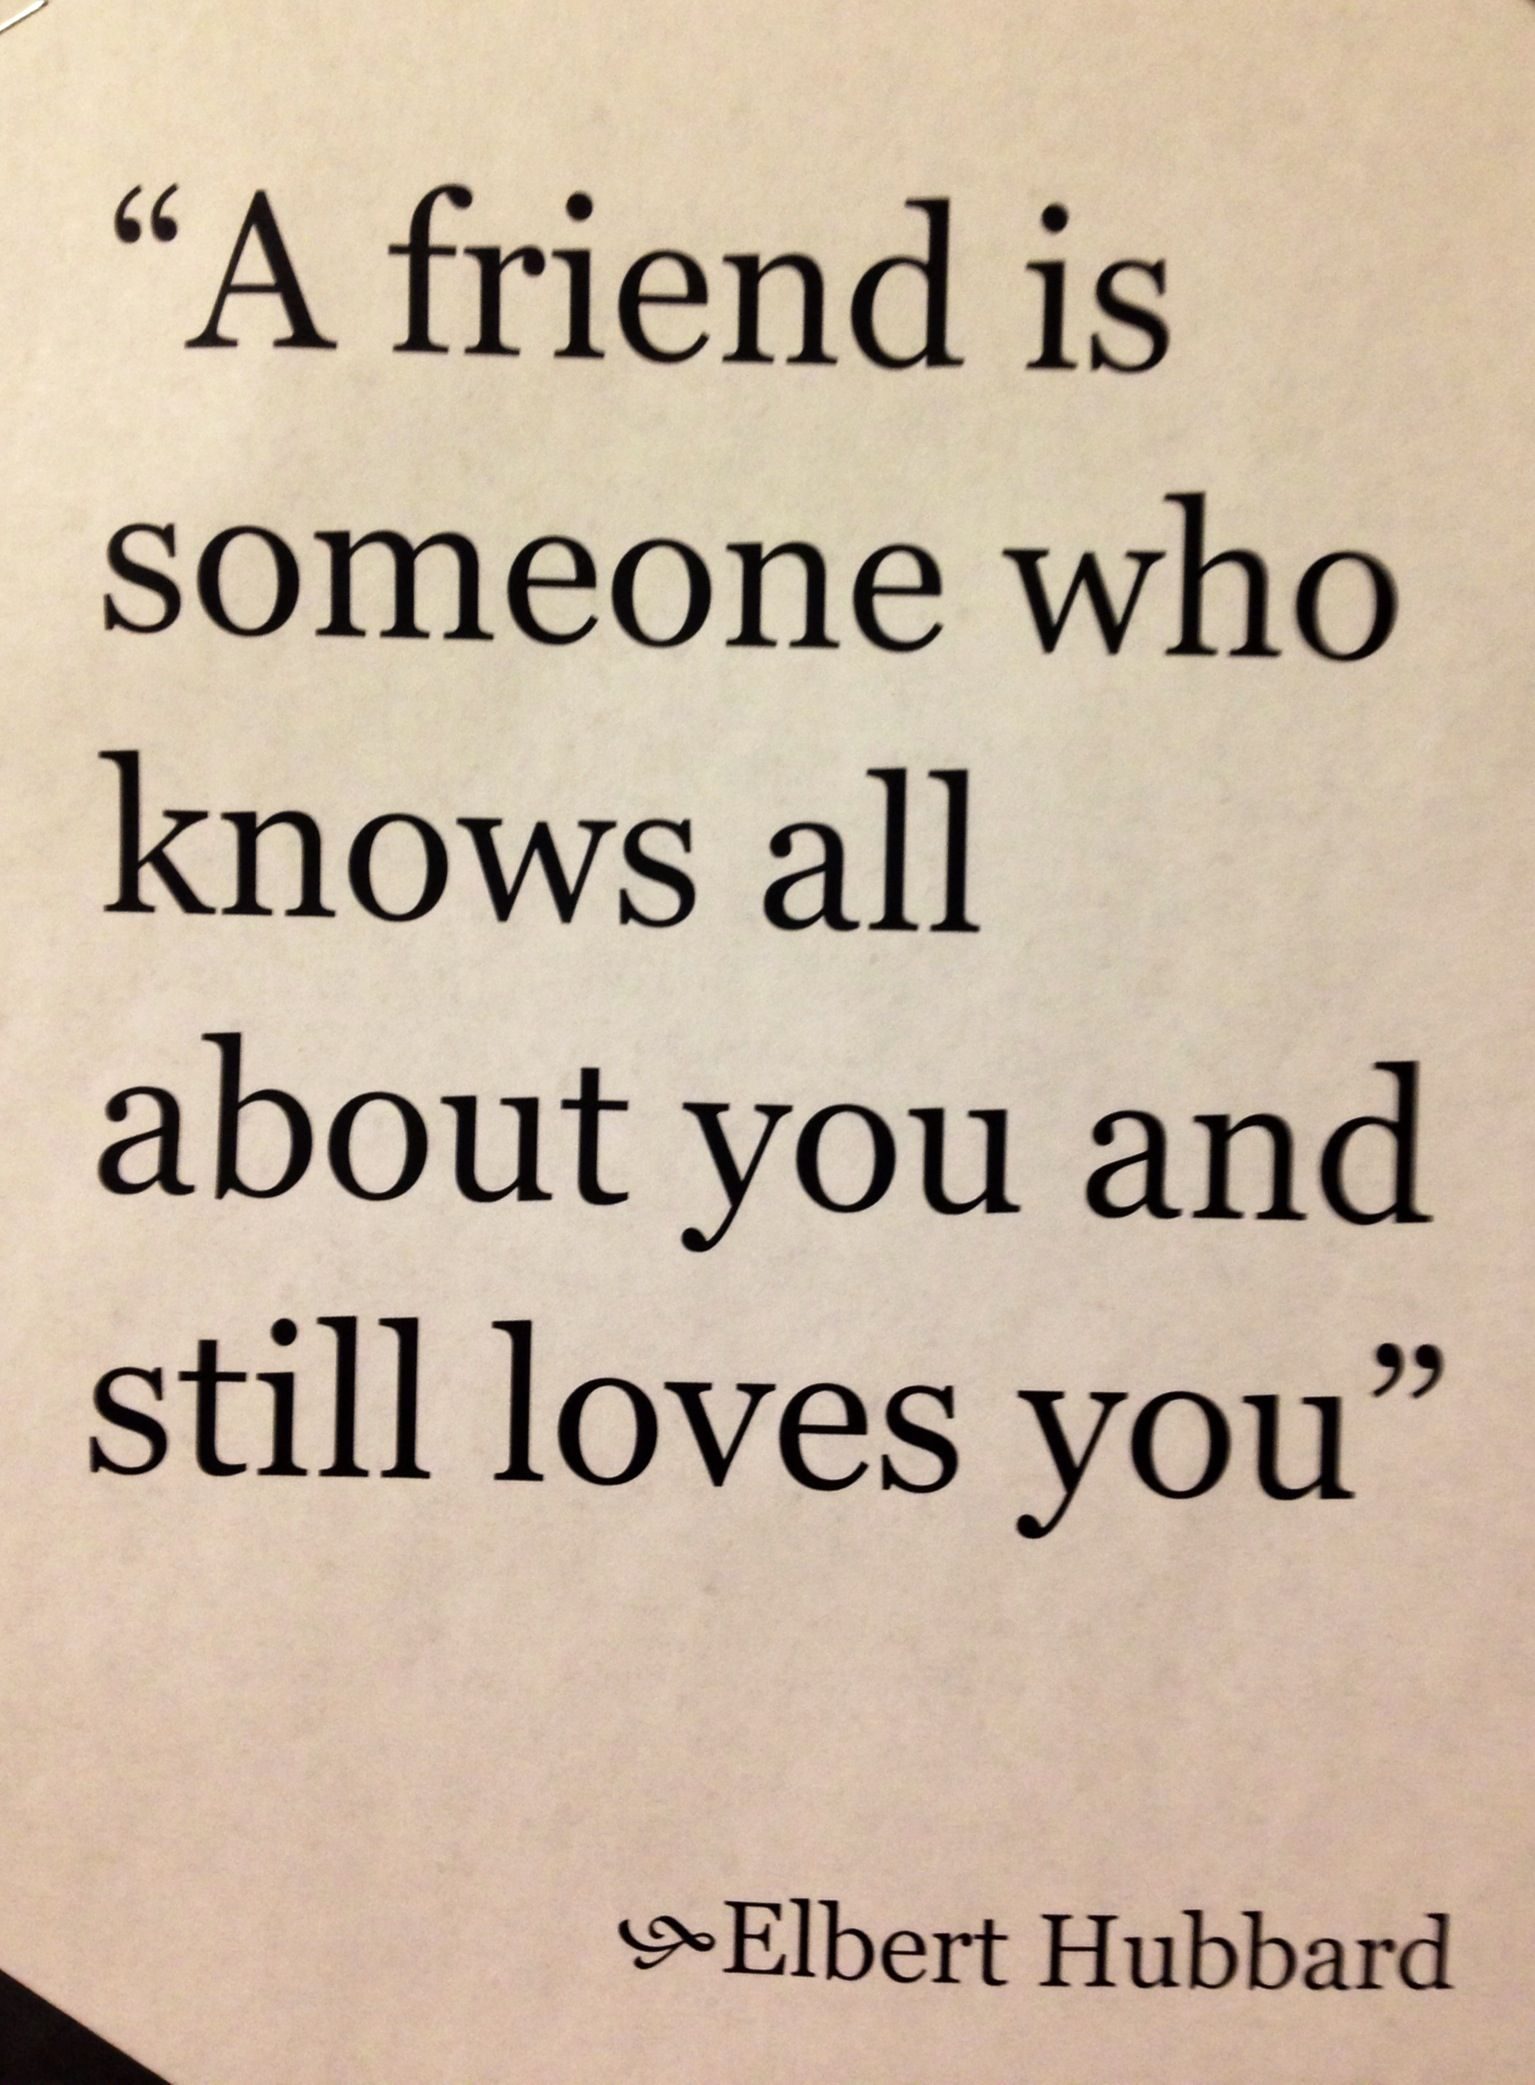 A friend is someone who knowes all about you and still loves you.